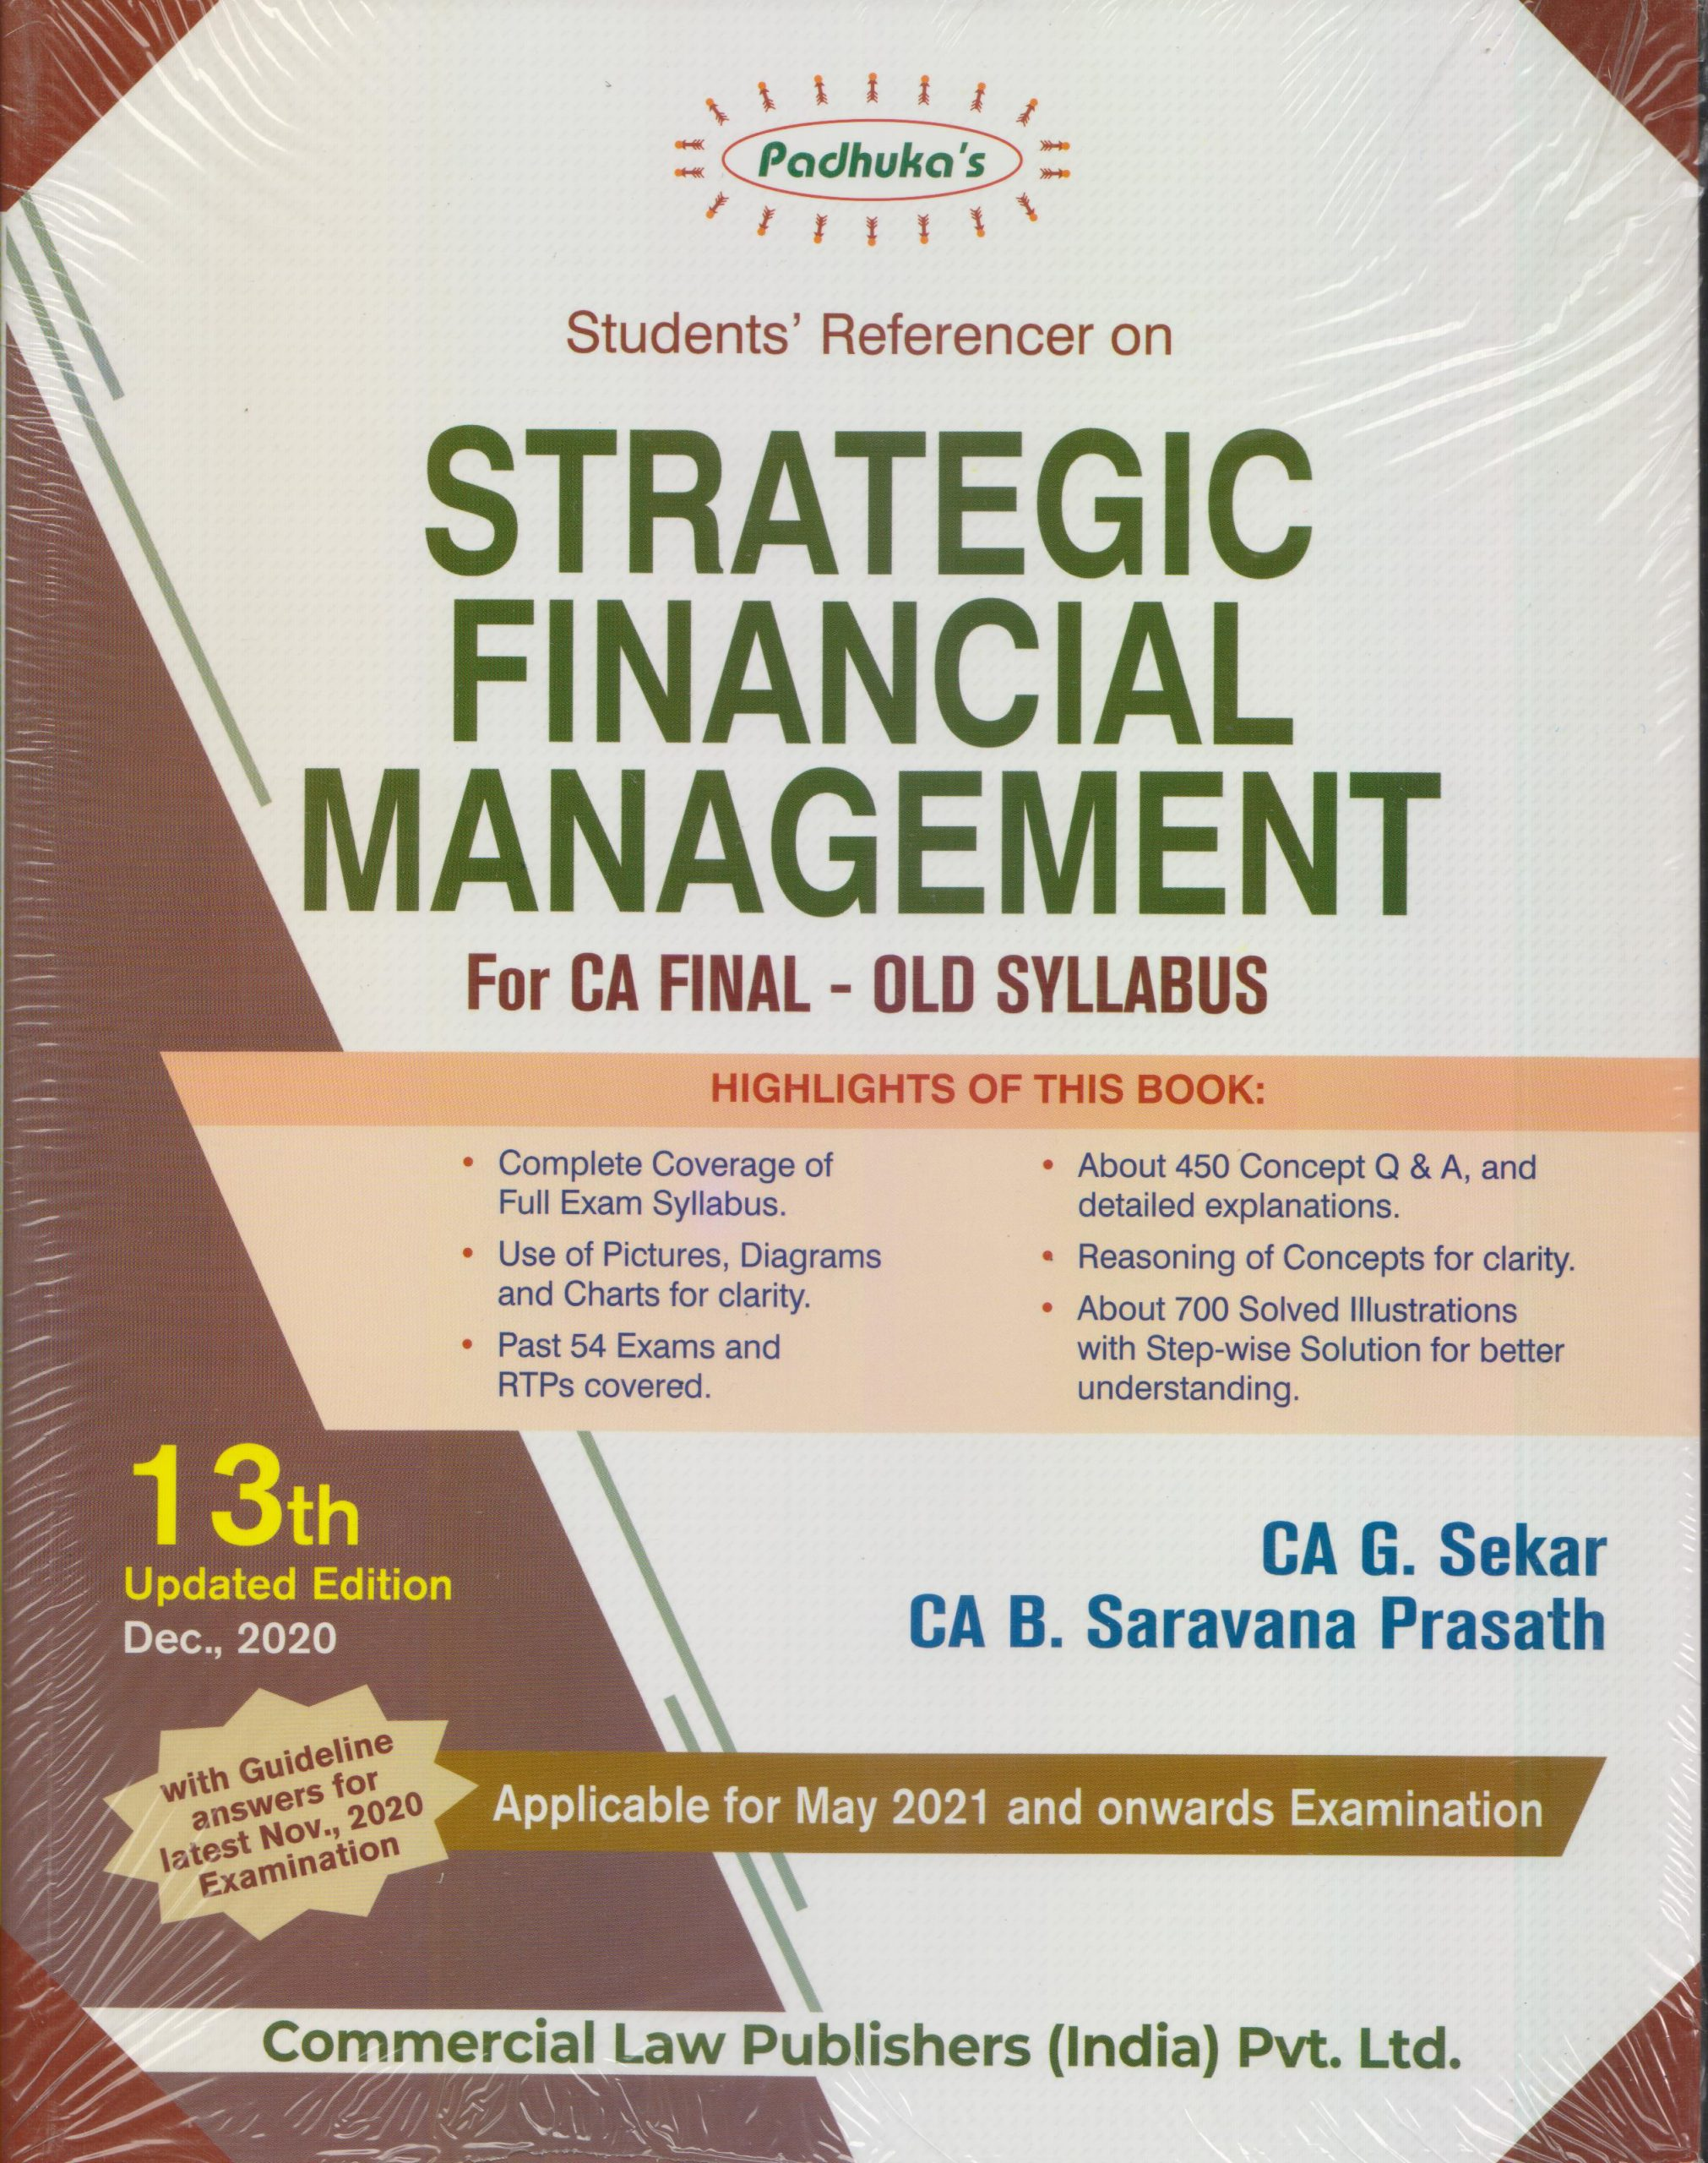 Padhuka Students' Reference on Strategic Financial Management(OLD SYLLABUS) for CA Final by CA G. Sekar and CA B. Saravana Prasath (Commercial Law Publishers)